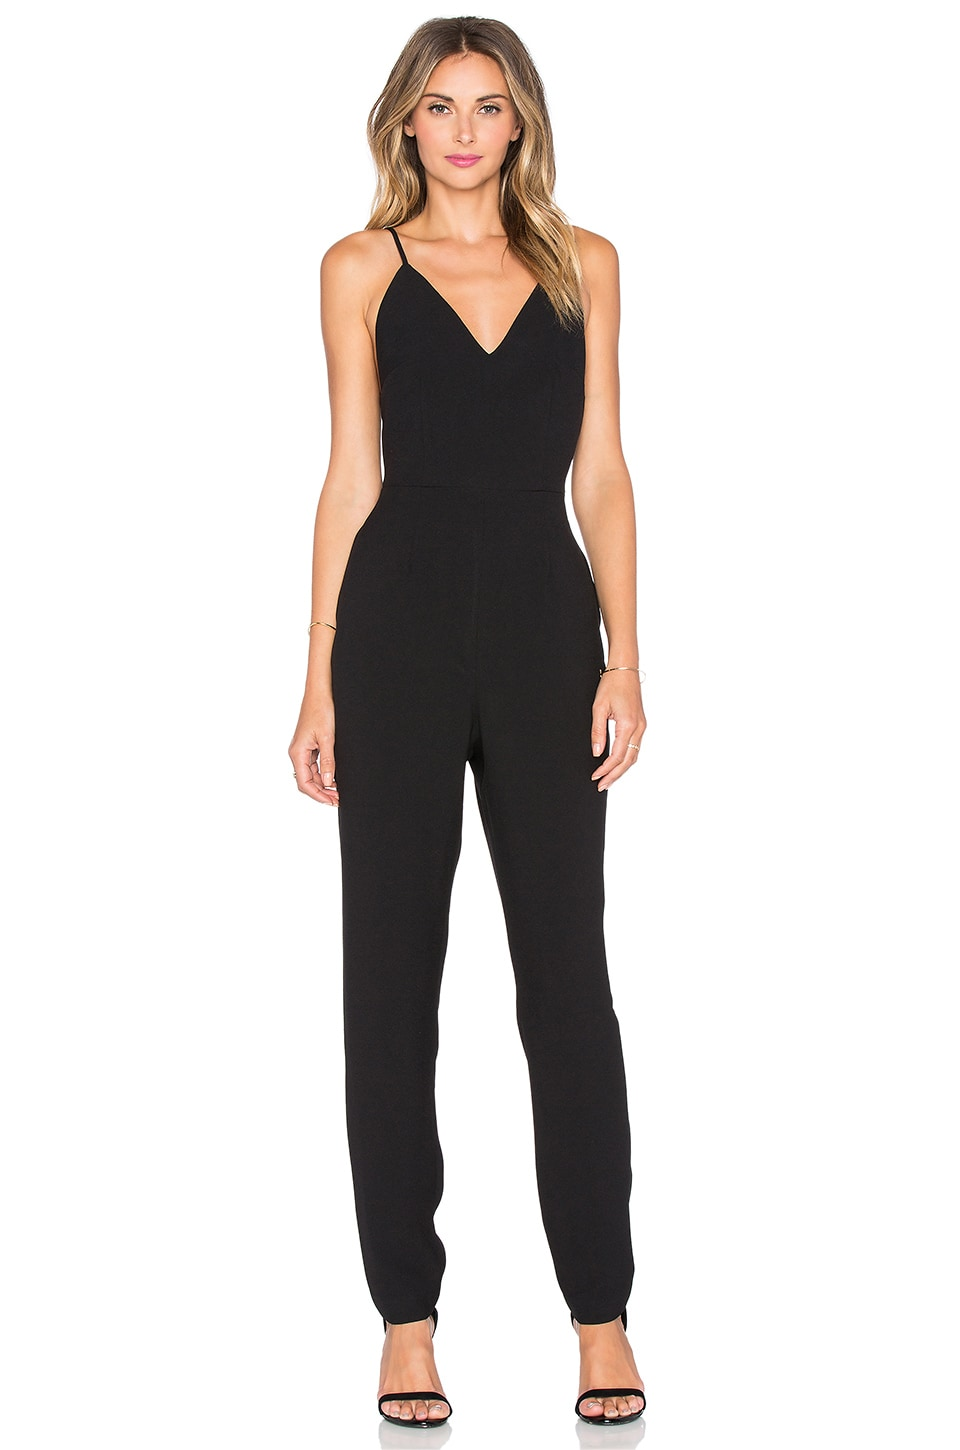 6a9d6bfc8fa9 Finders Keepers Stand Still Jumpsuit in Black